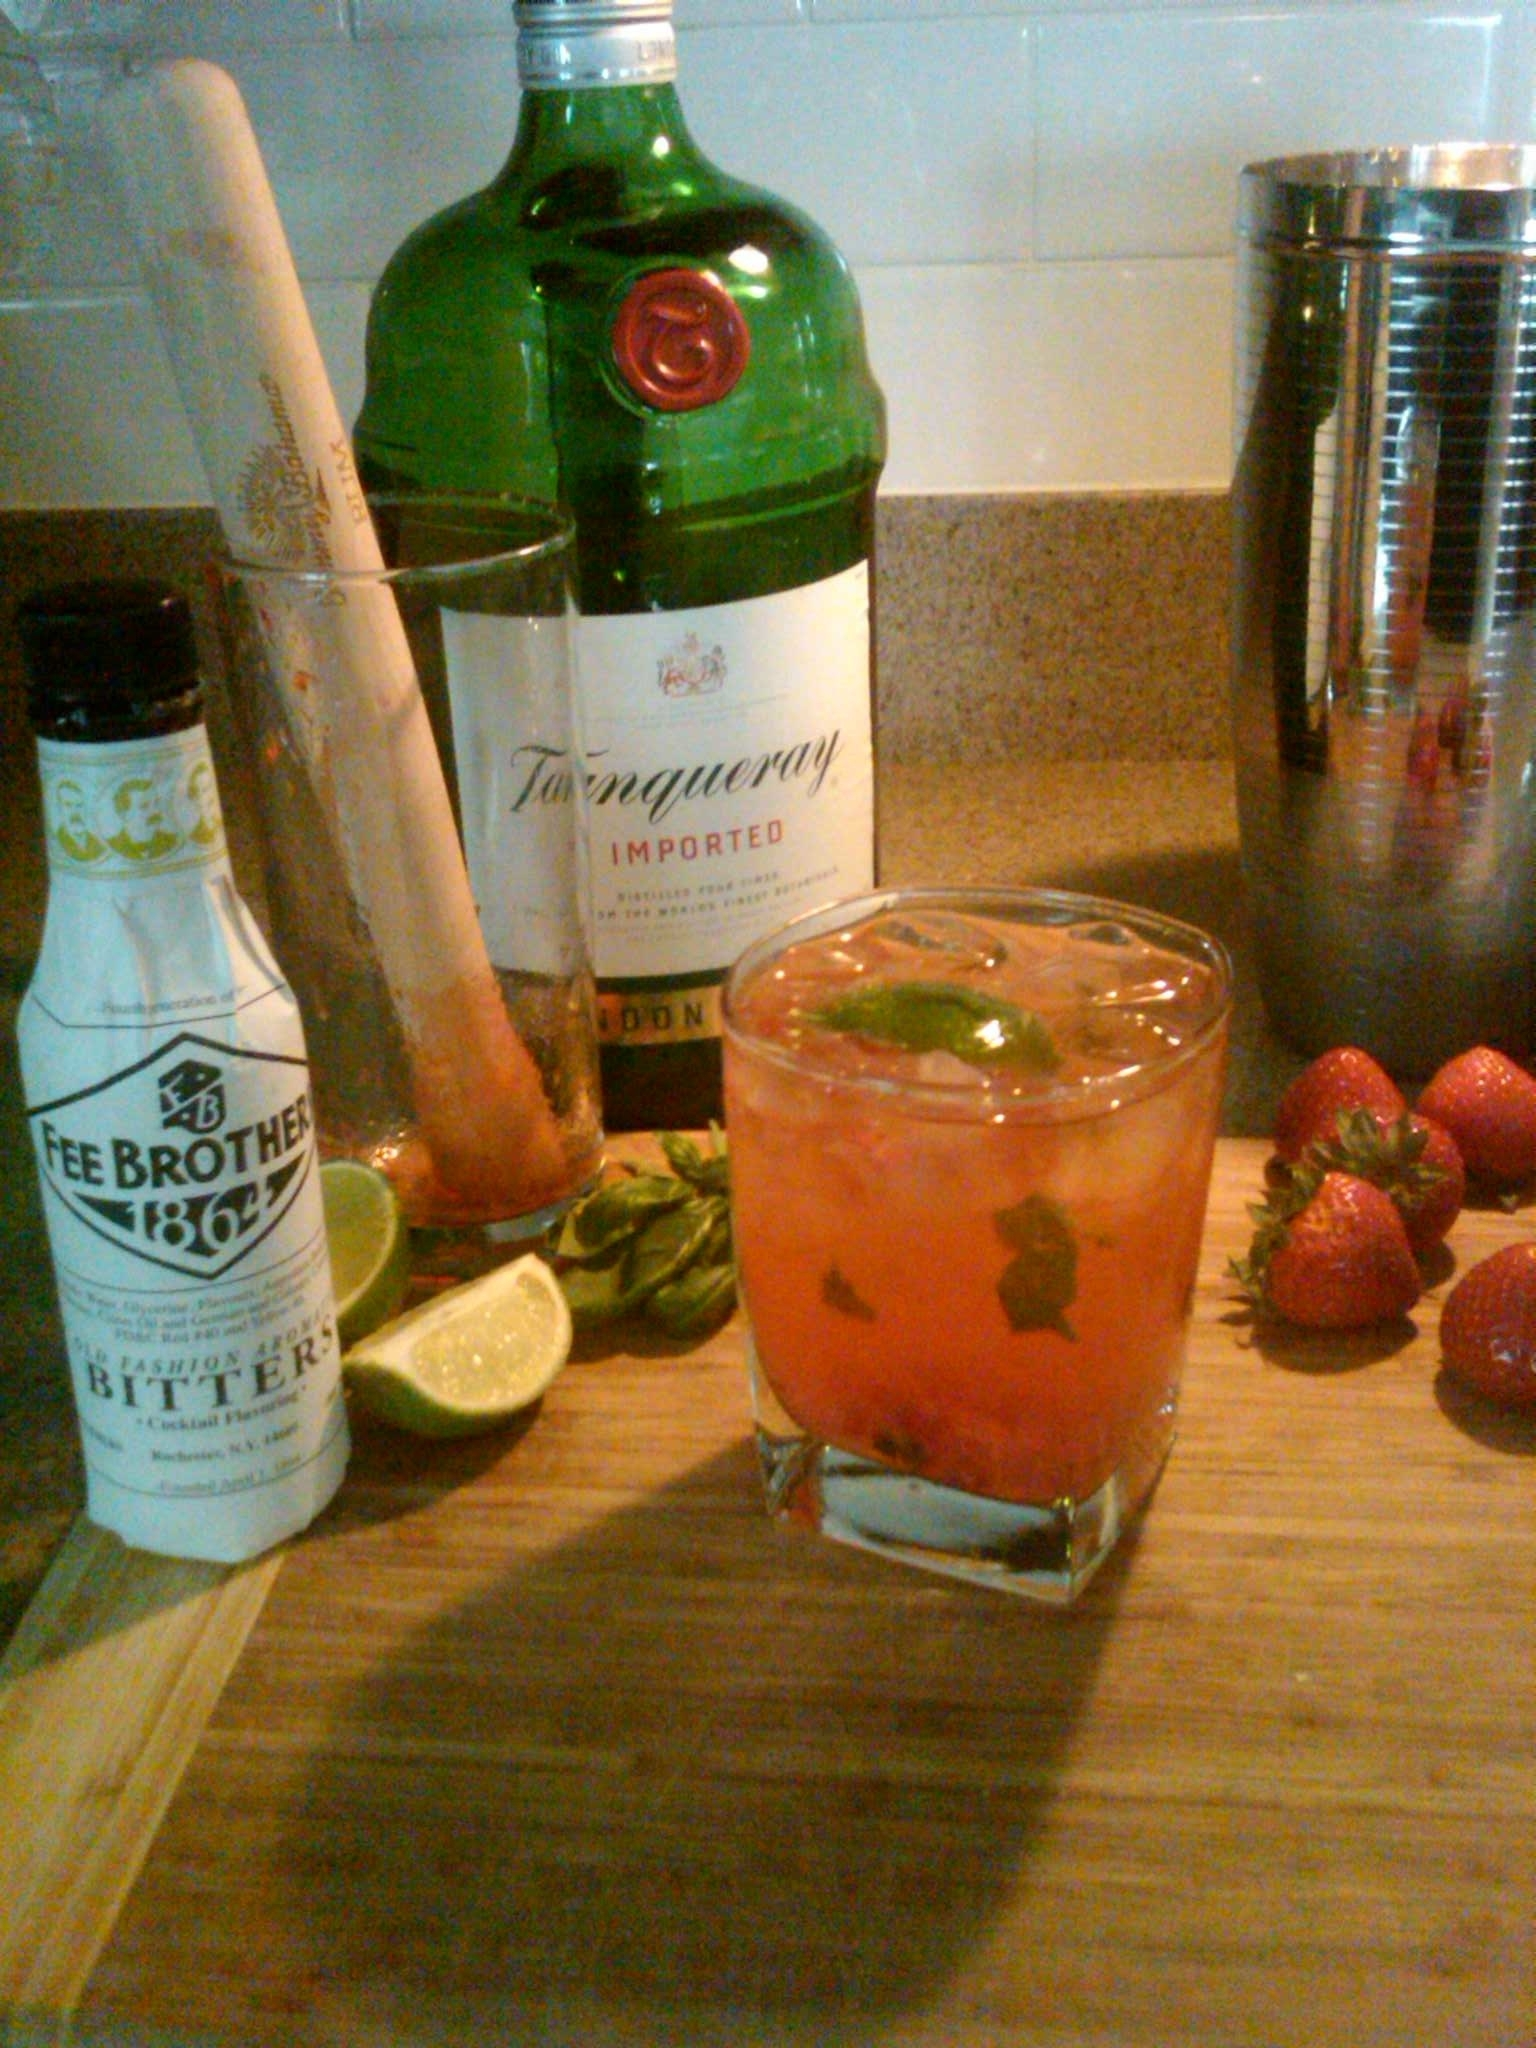 Summer Cocktail using Fee Brothers Bitters